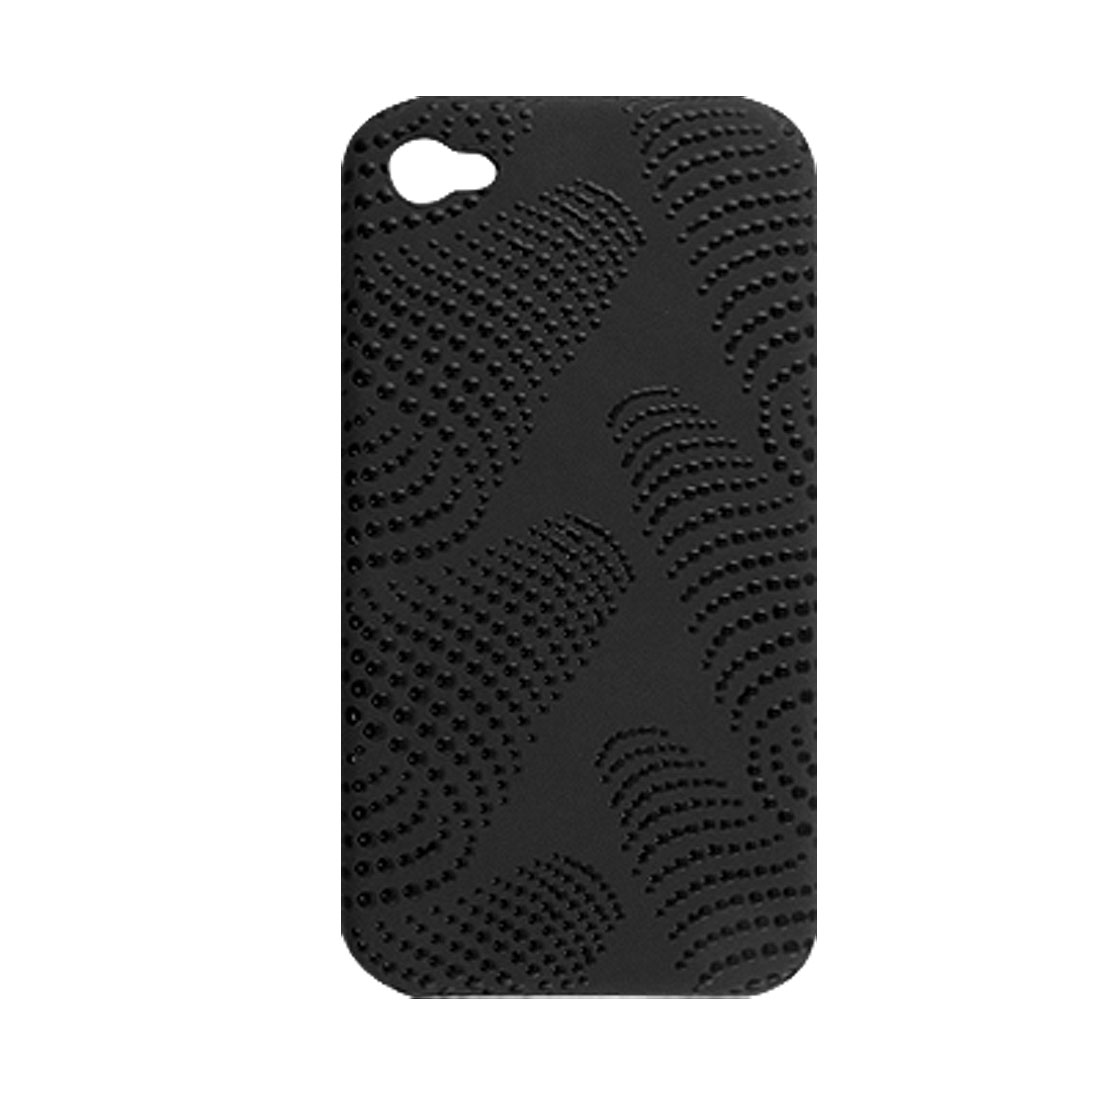 Black Anti Slip Dot Print Hard Plastic Back Case for iPhone 4 4G